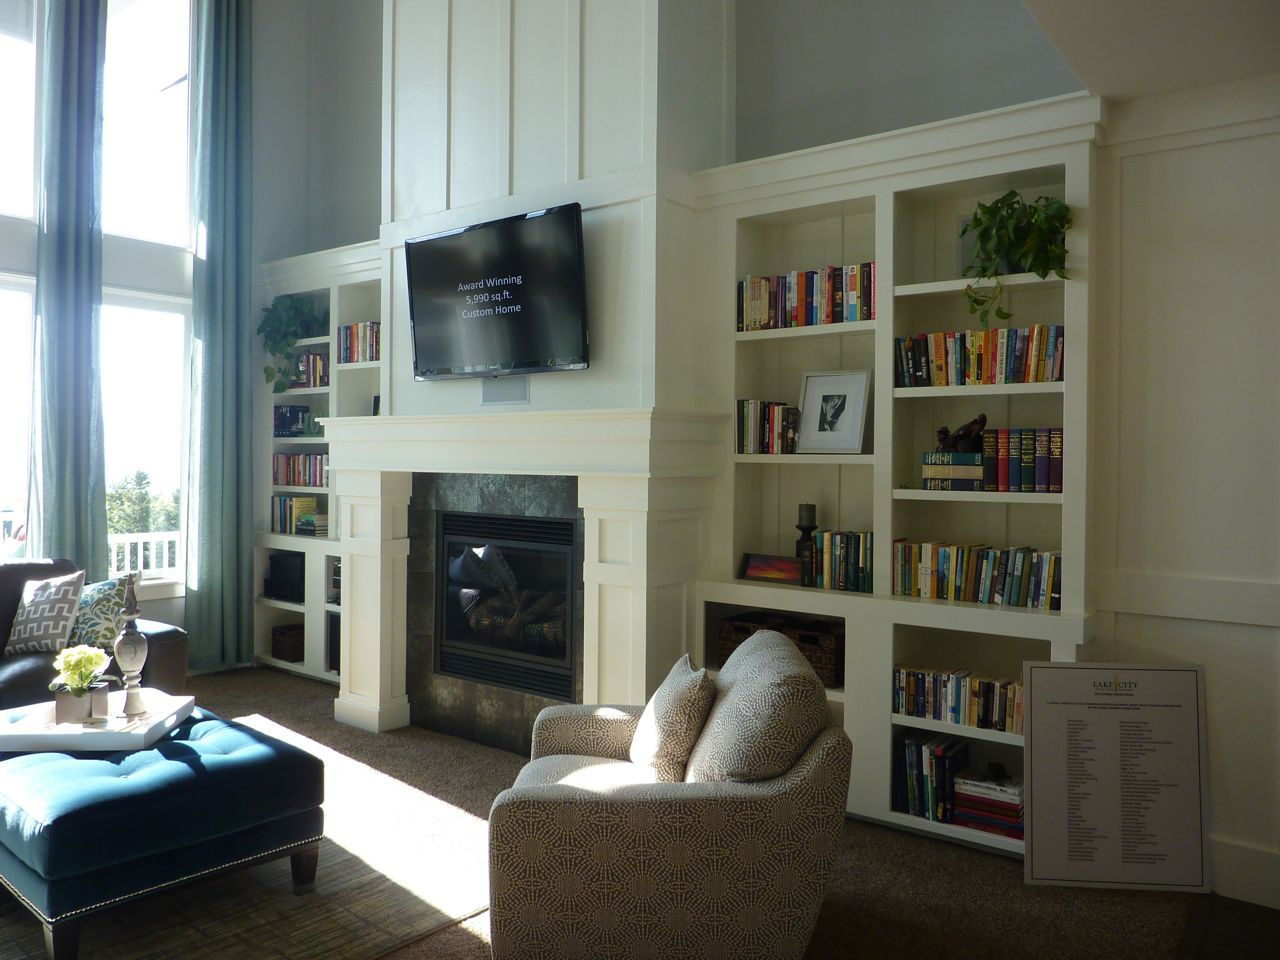 Fireplace Fir 2 Story Great Room No Tv Above Needs More Color But Kinda